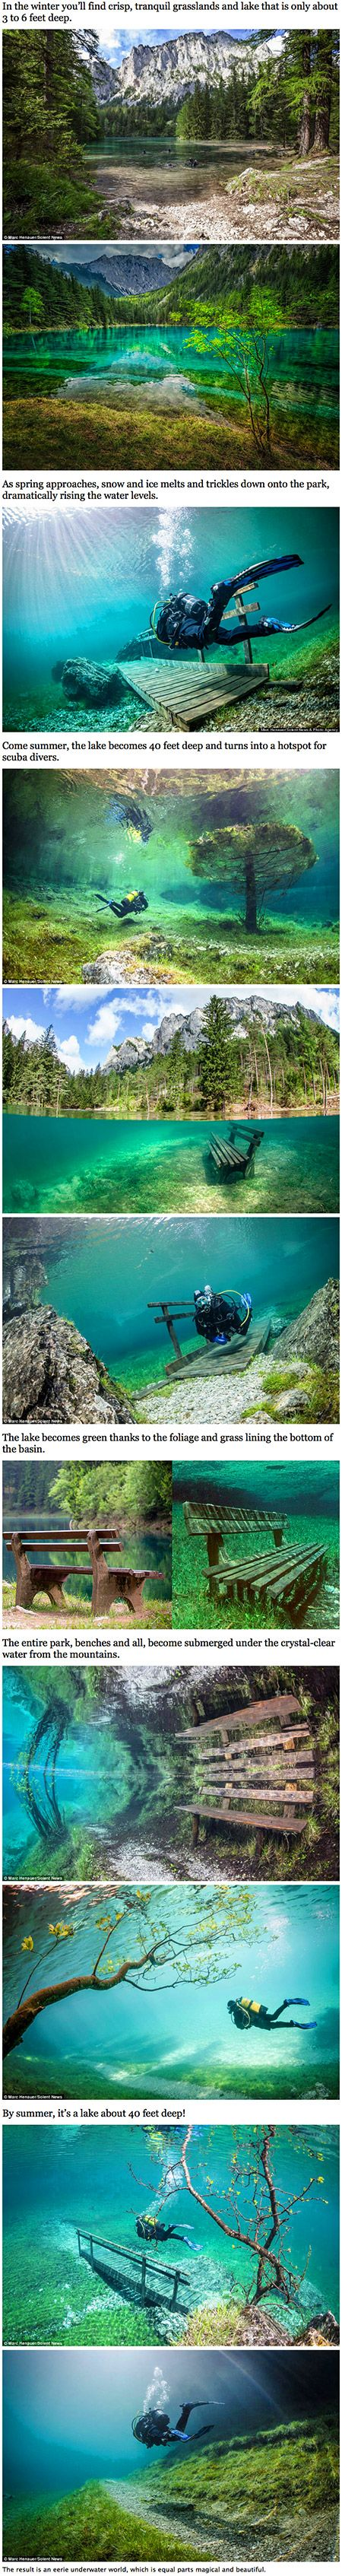 Gr�ner See (green Lake) Is A Lake In Styria, Austria Known For Its